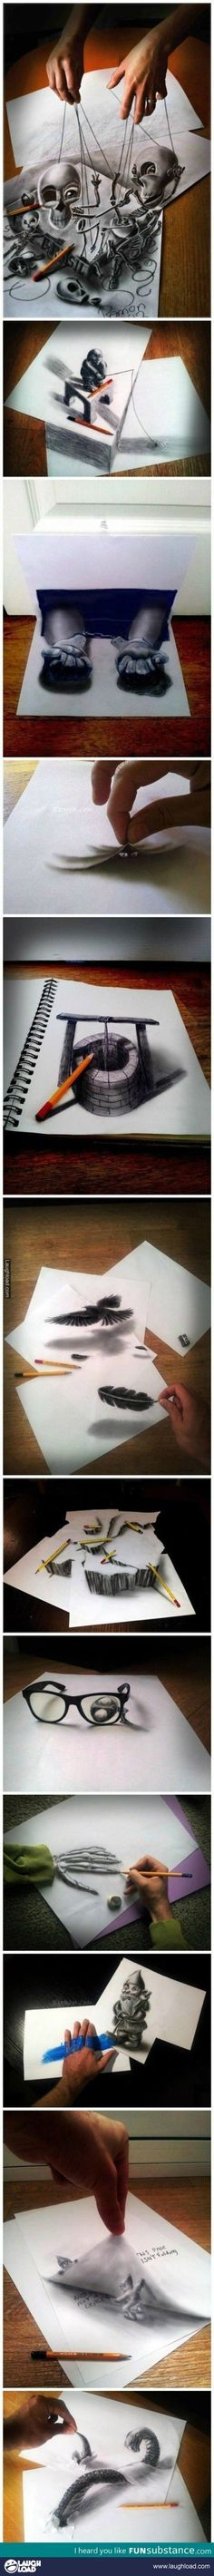 Mind Blowing 3D Drawings